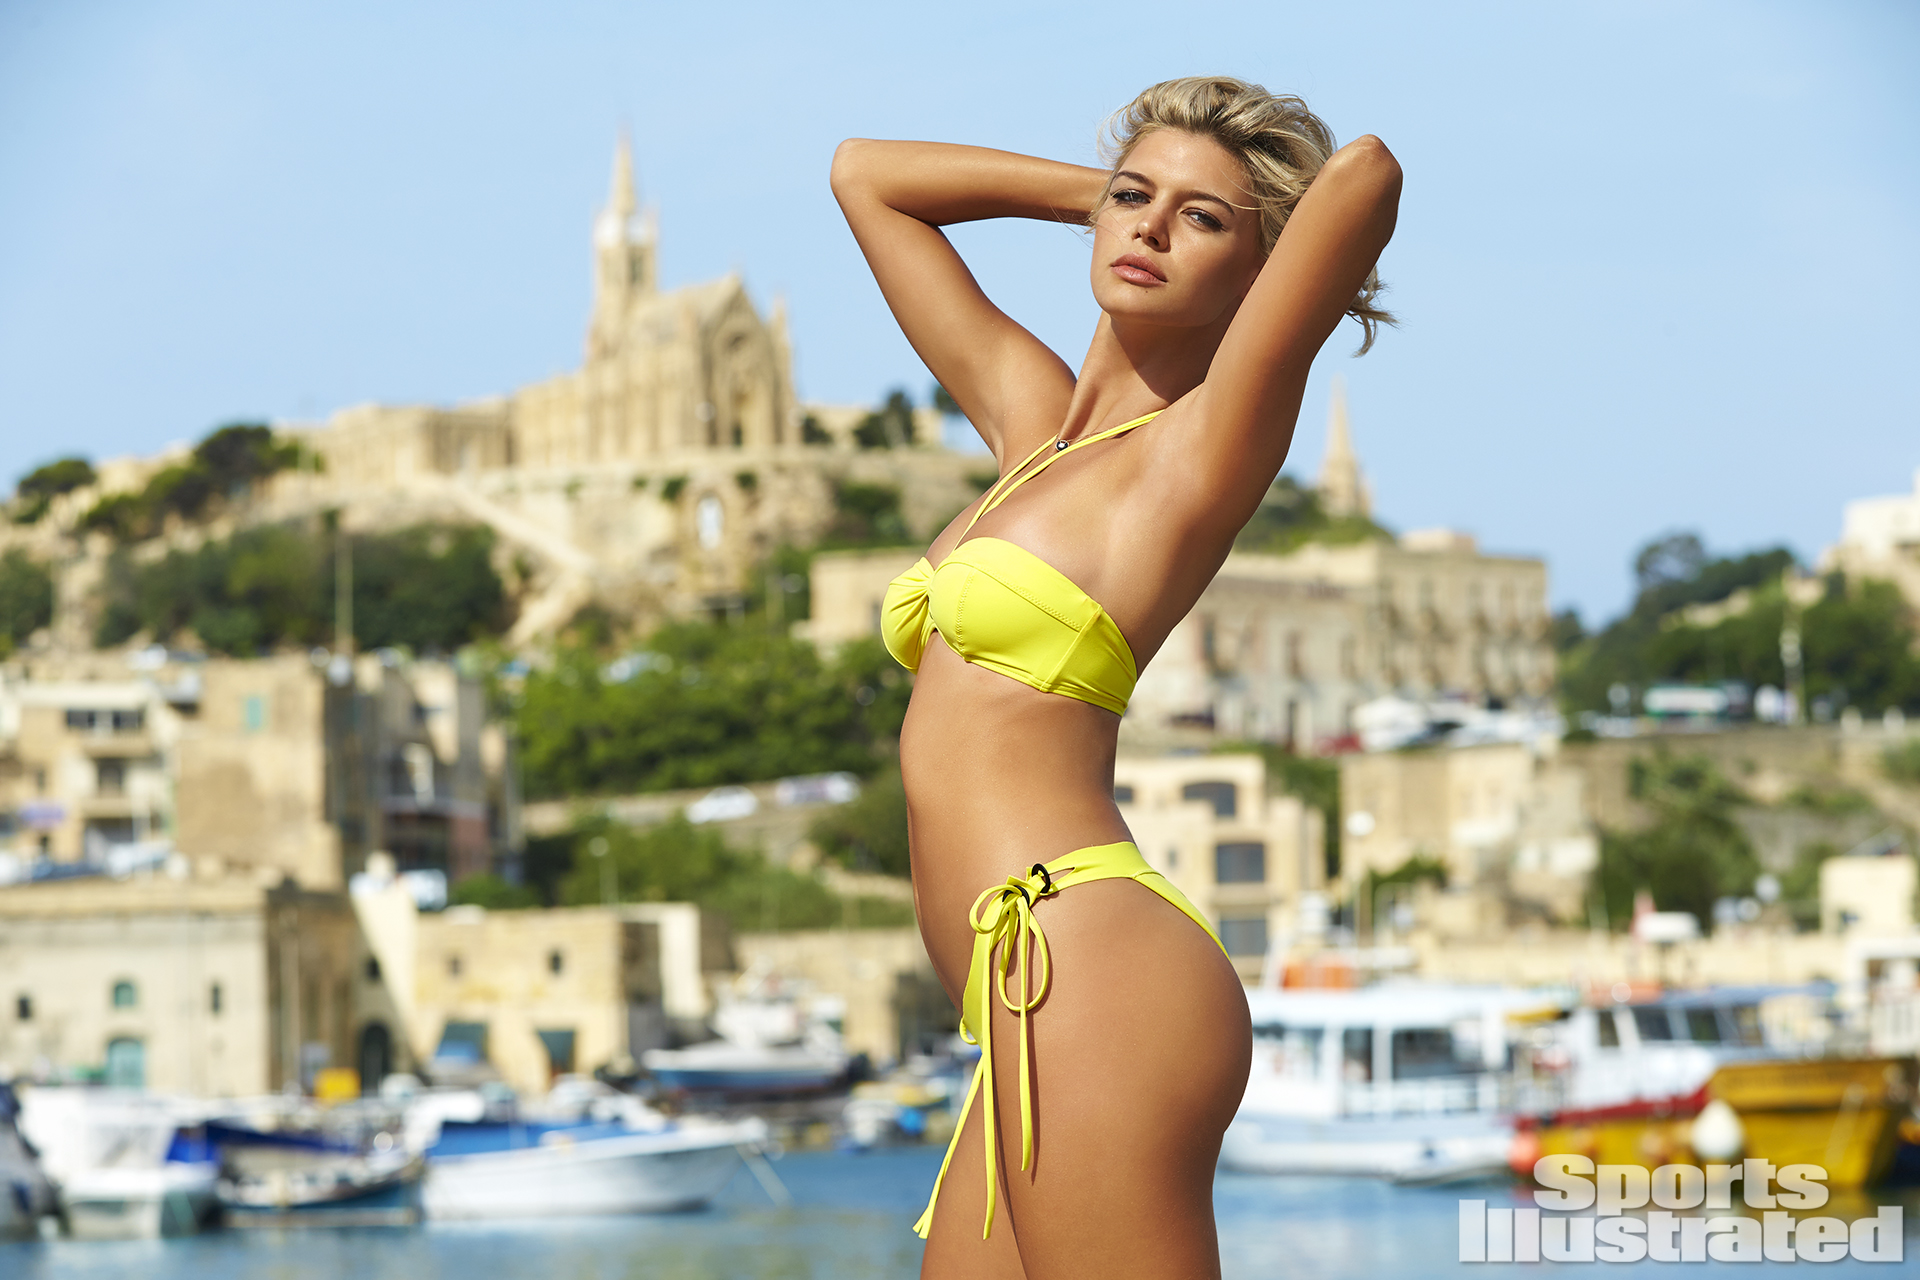 Kelly Rohrbach was photographed by Ben Watts in Malta. Swimsuit by Proenza Schouler.